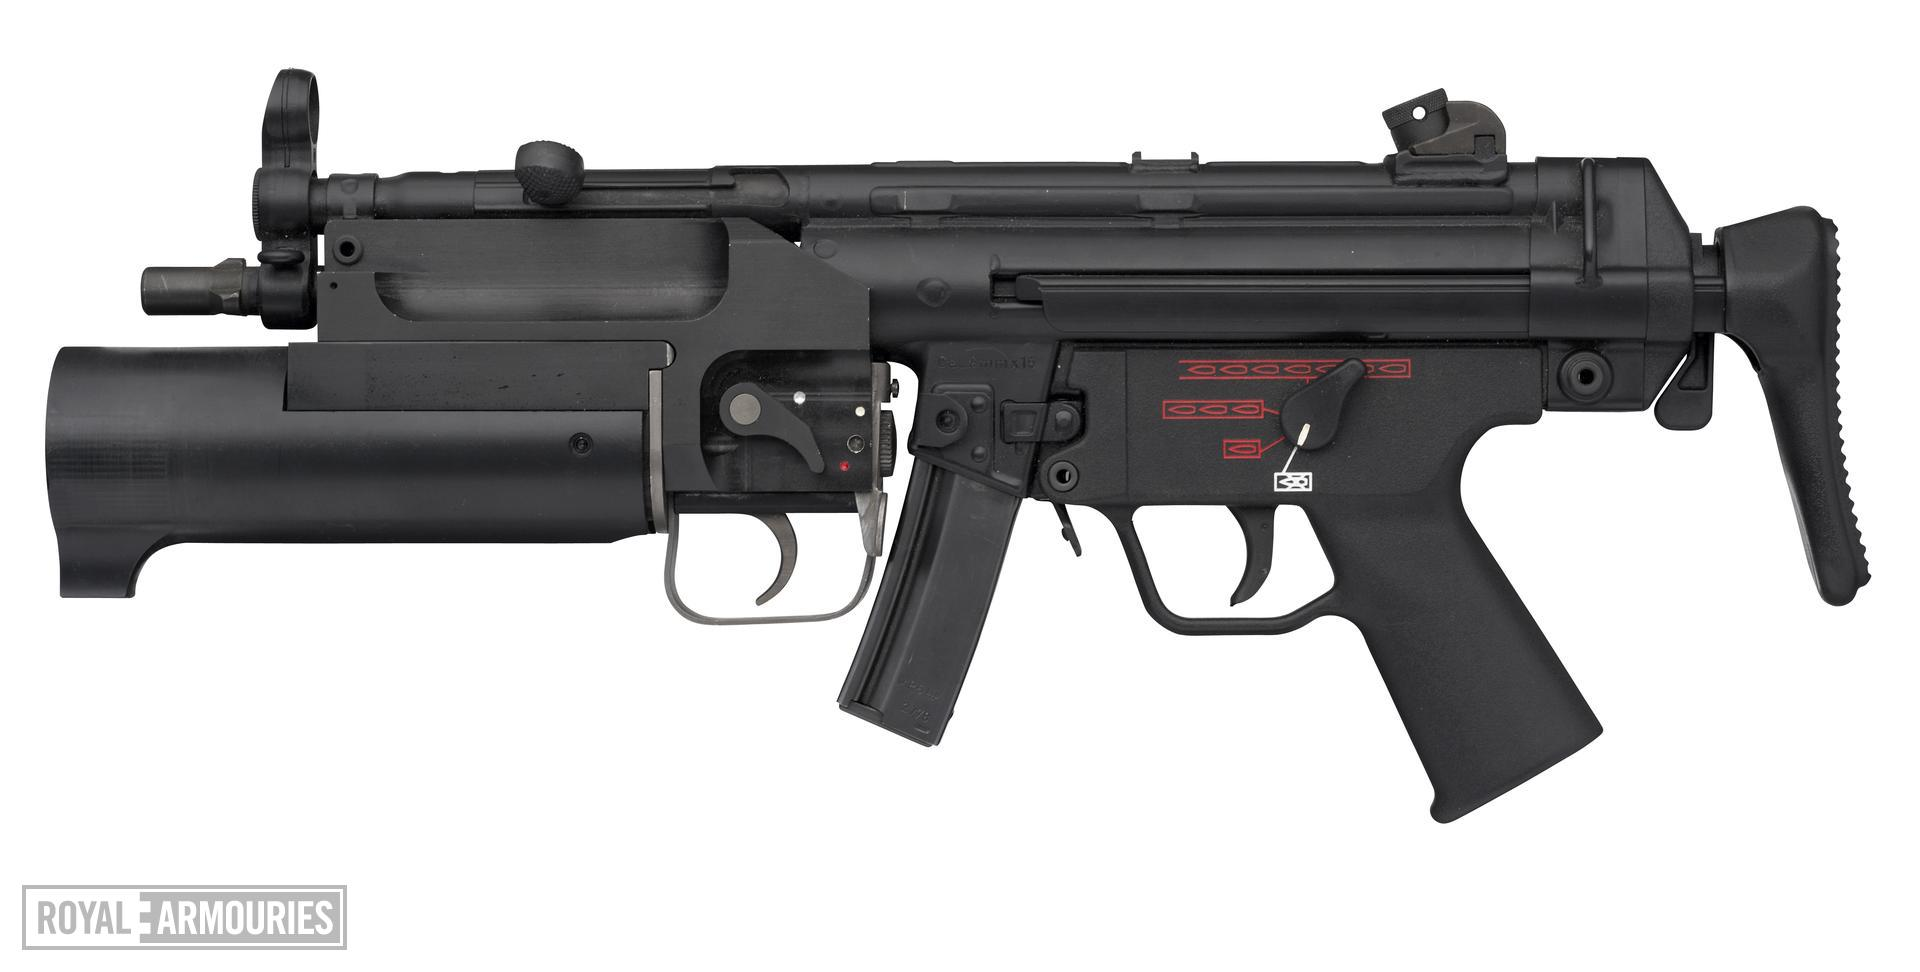 Centrefire automatic silenced submachine gun - Heckler and Koch MP5 A5E With collapsable stock.